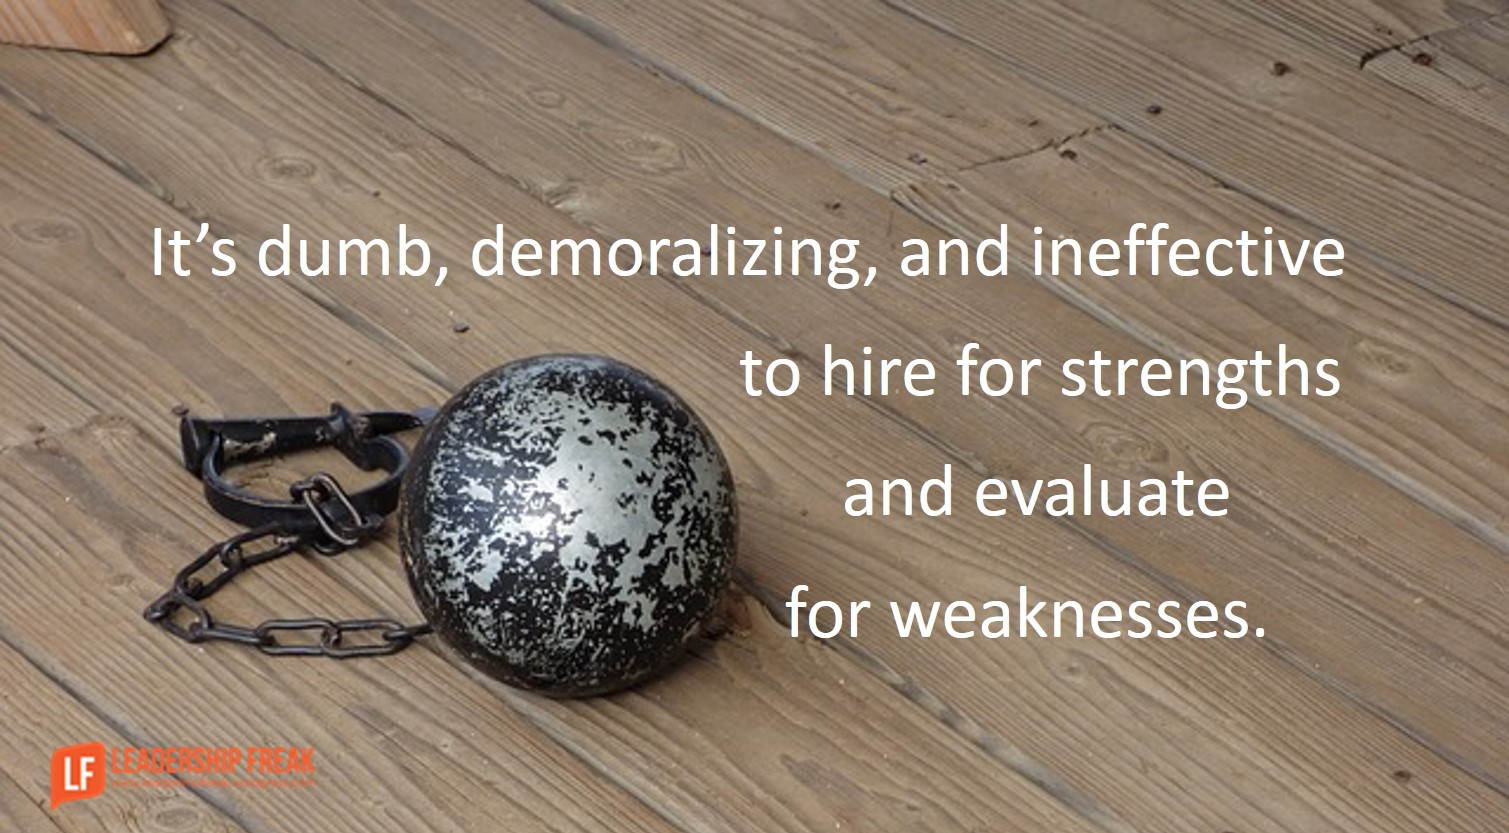 the three competencies of effective leaders leadership freak it dumb demoralizing and ineffective to hire for strengths and evaluate for weaknesses